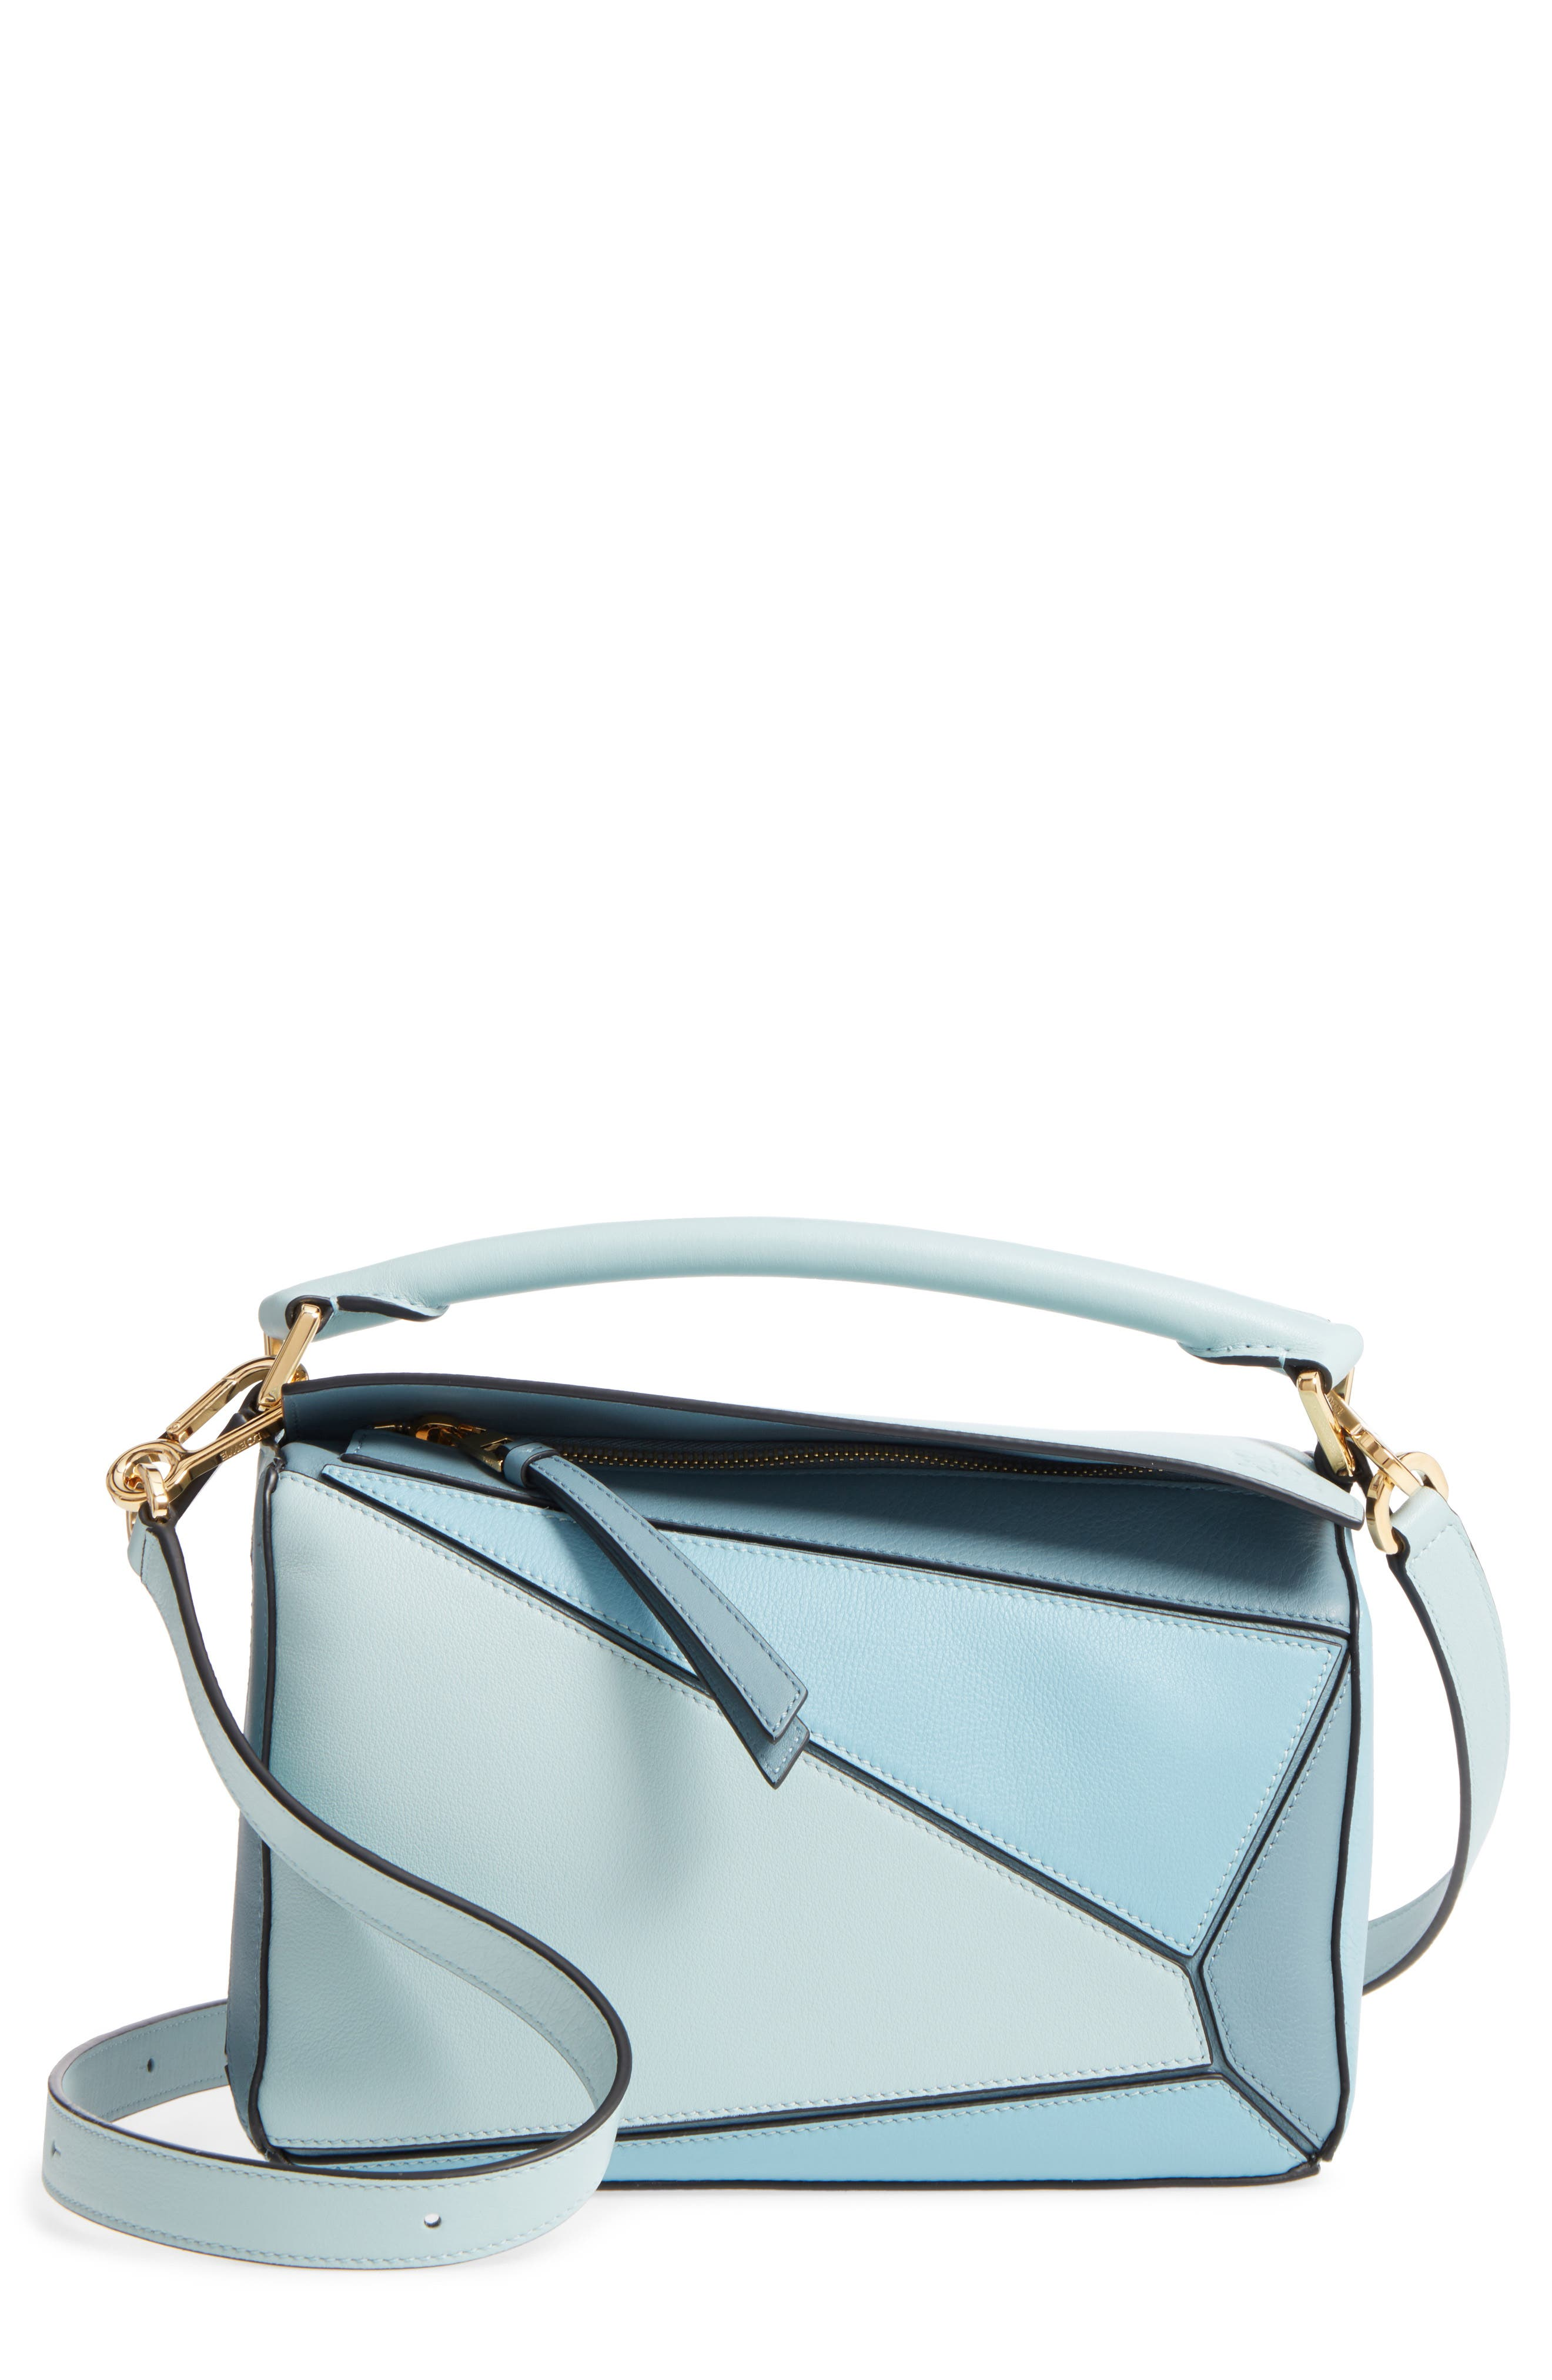 Alternate Image 1 Selected - Loewe Small Puzzle Tricolor Leather Bag